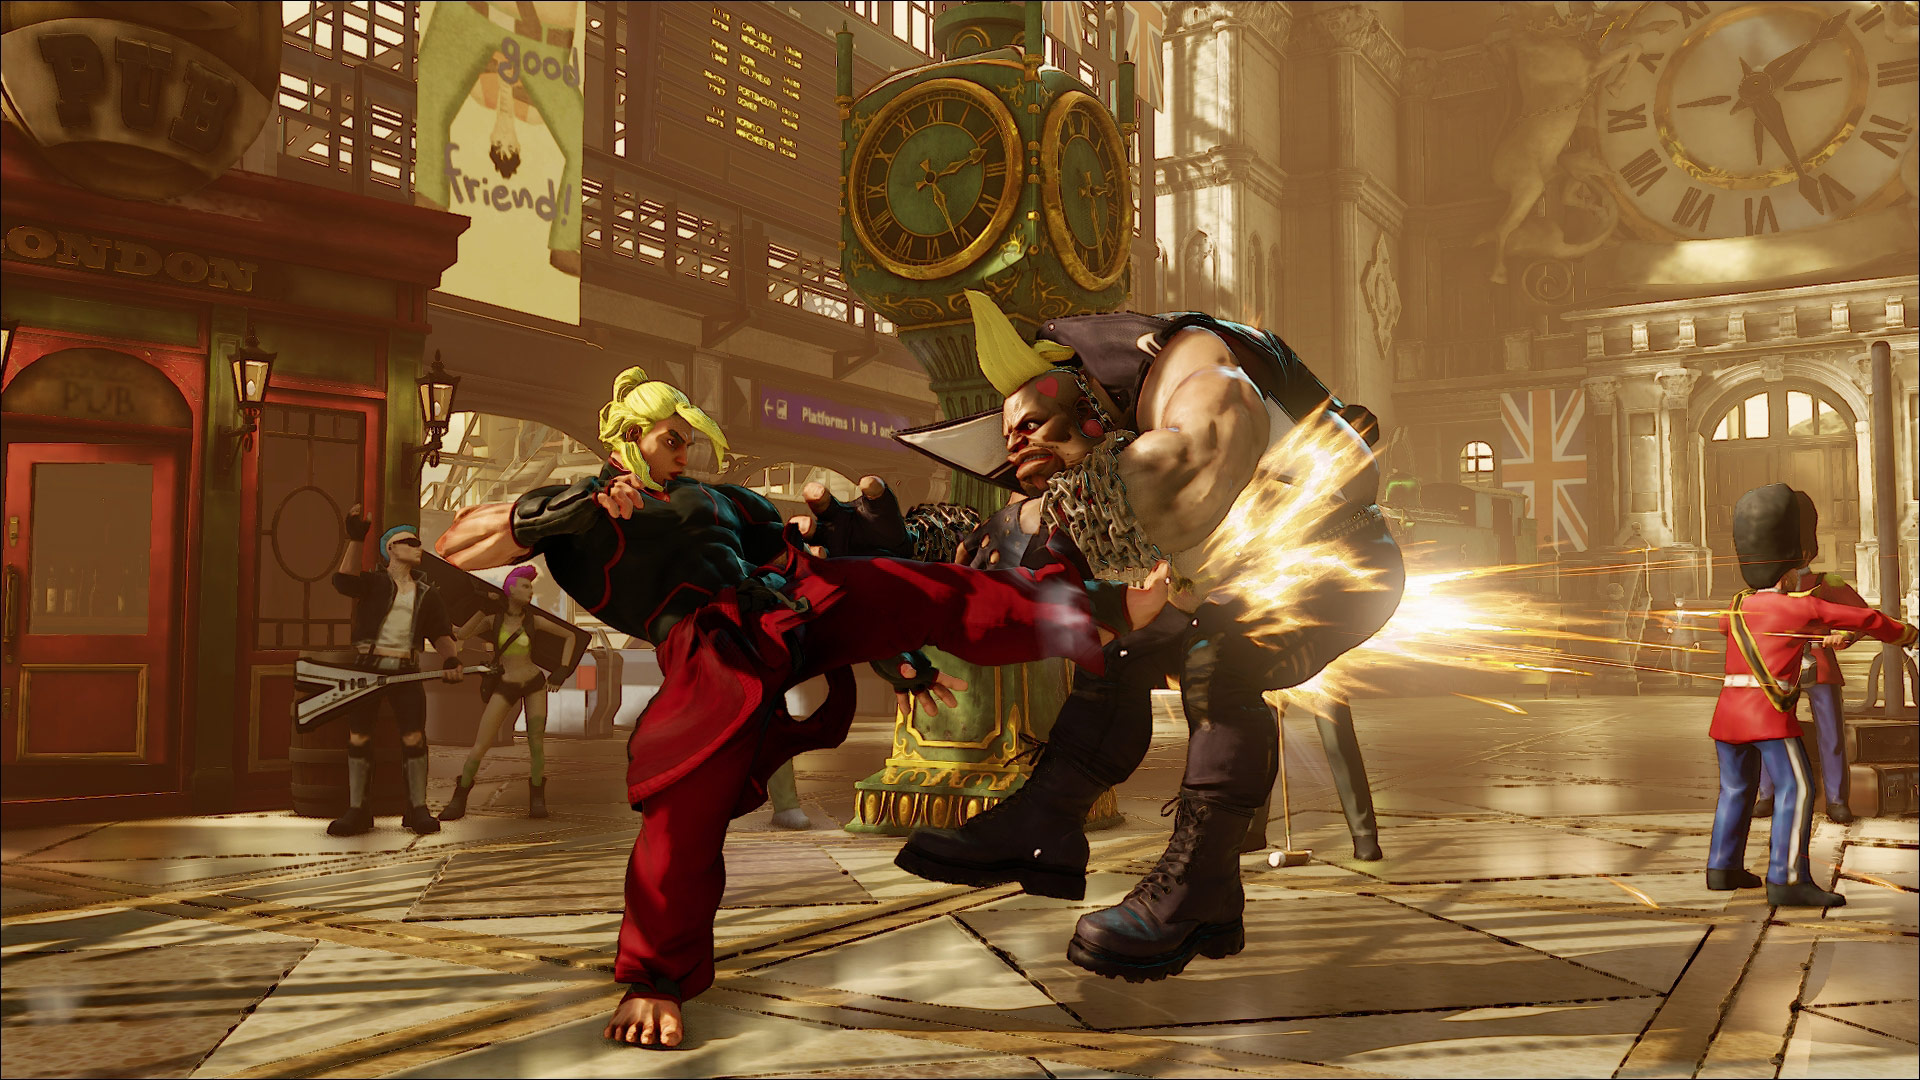 Ken's V-Trigger and V-Skill explained 2 out of 4 image gallery